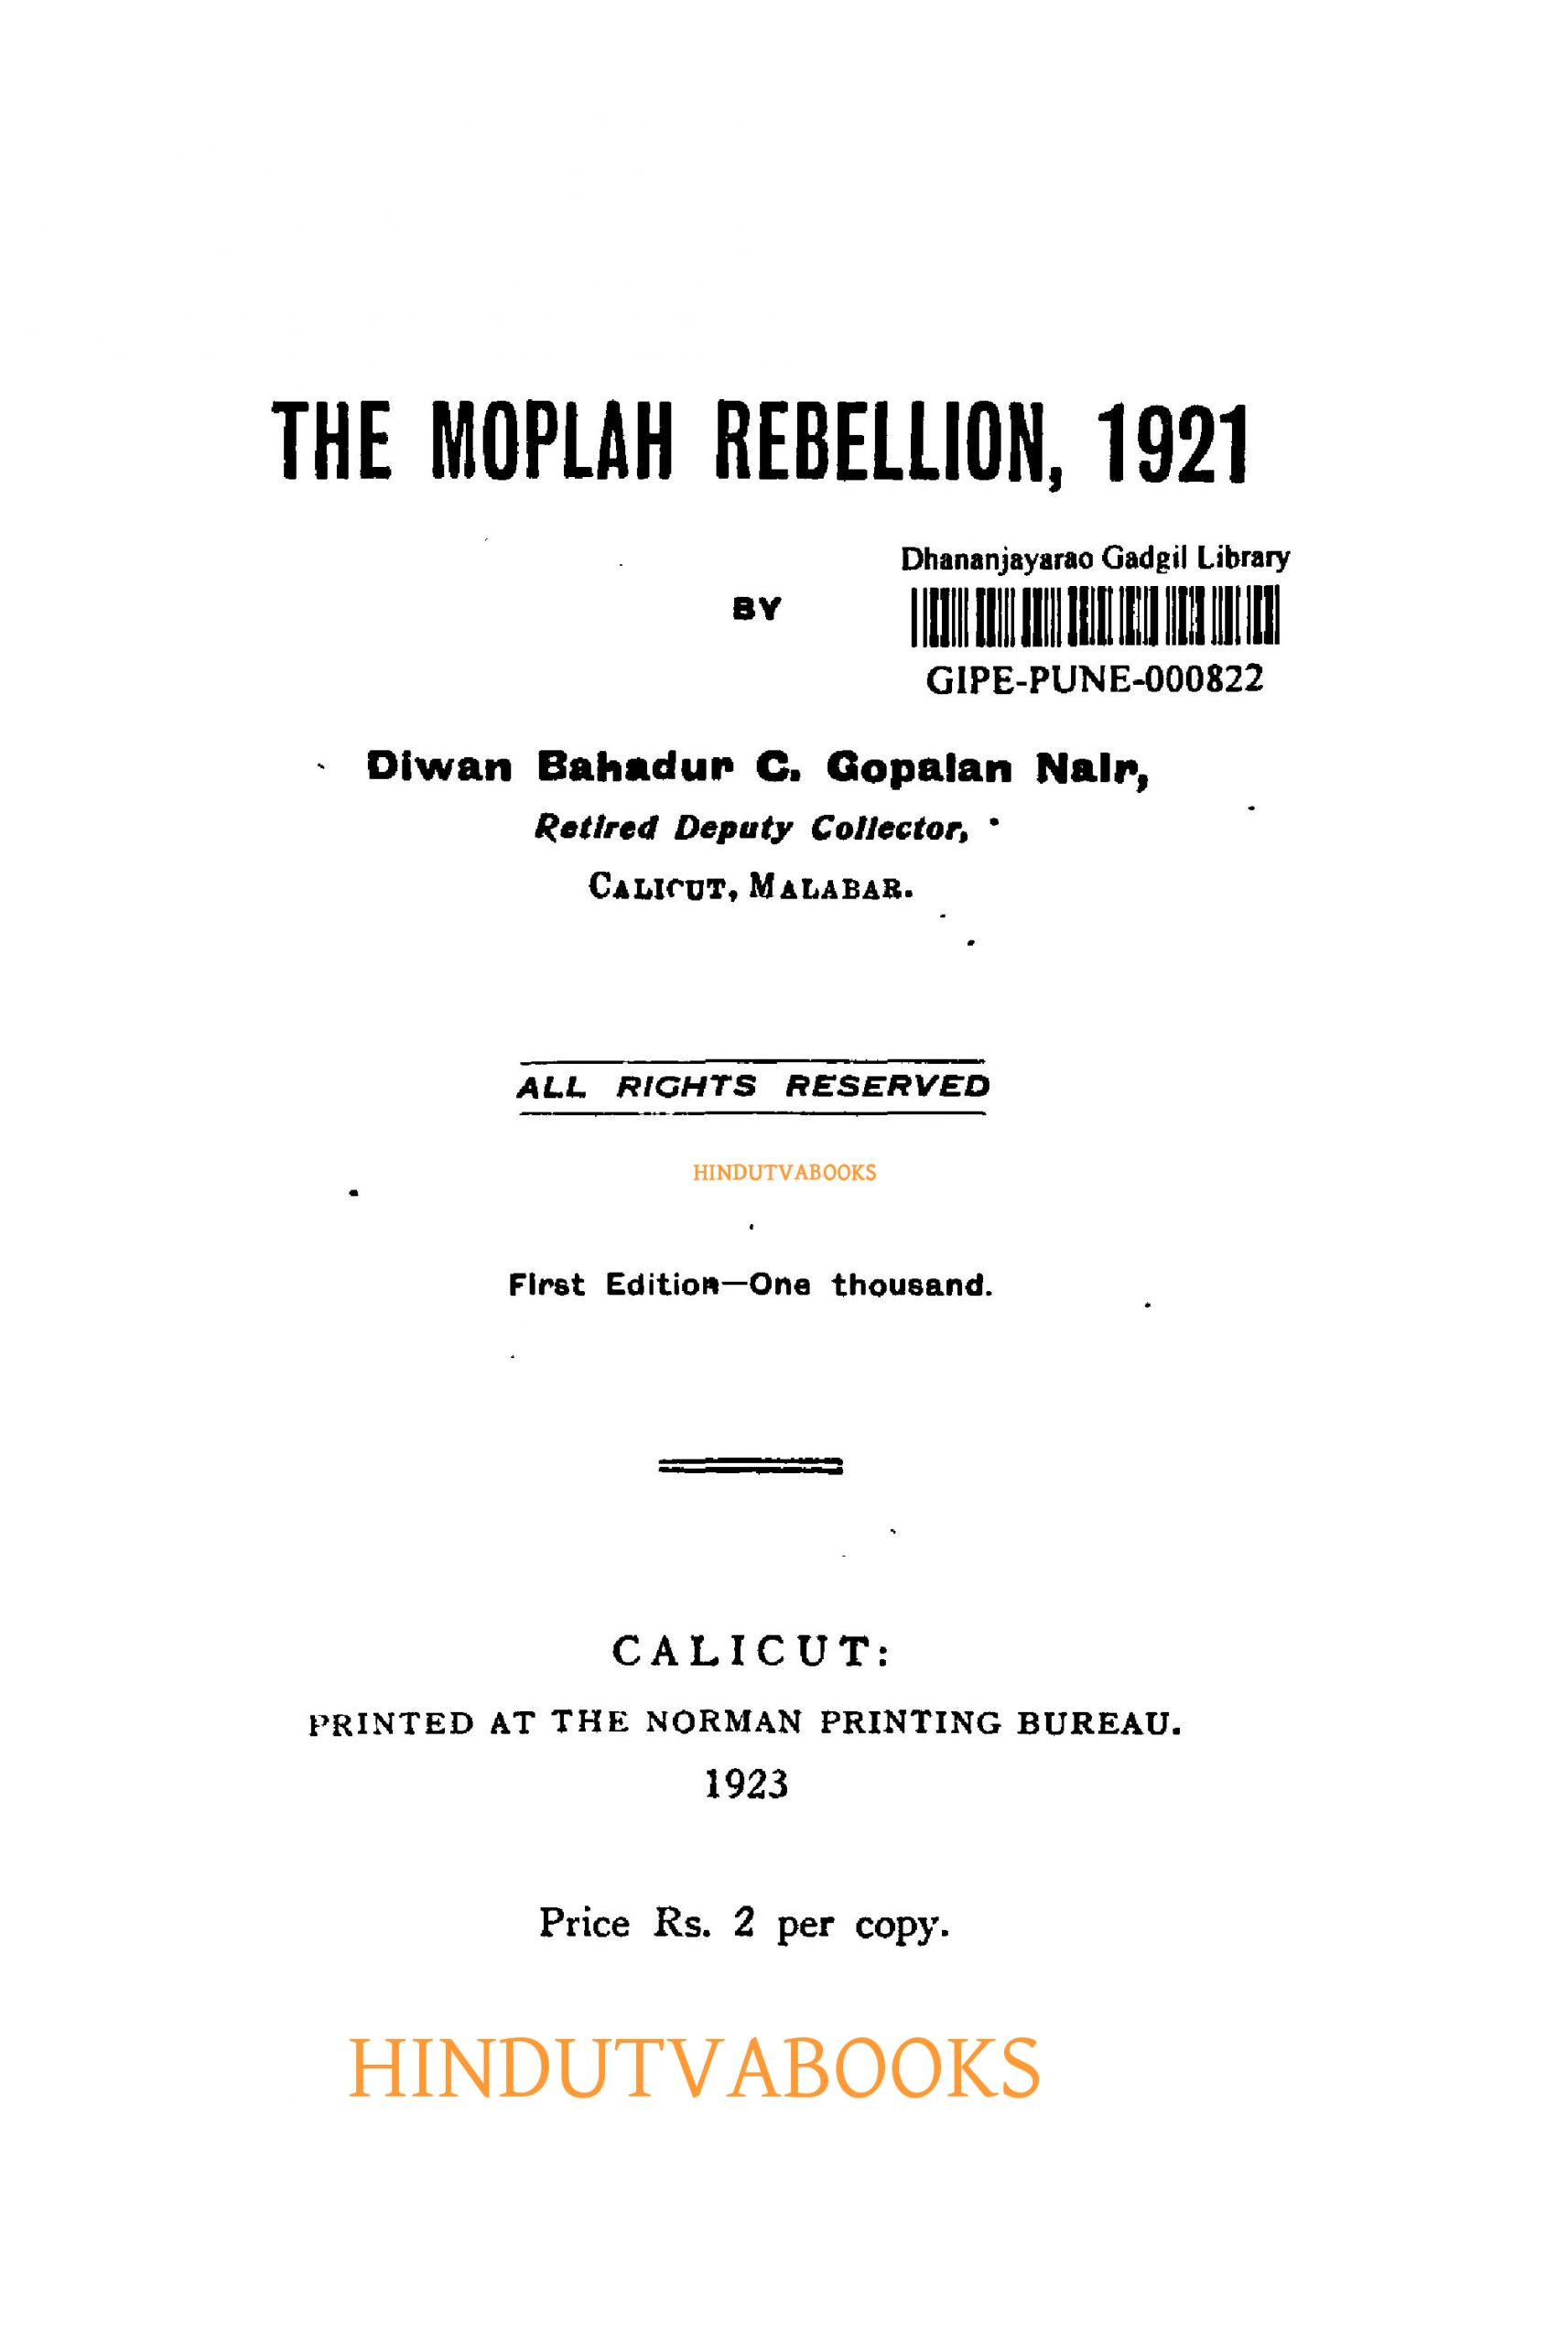 The Moplah Rebellion, 1921